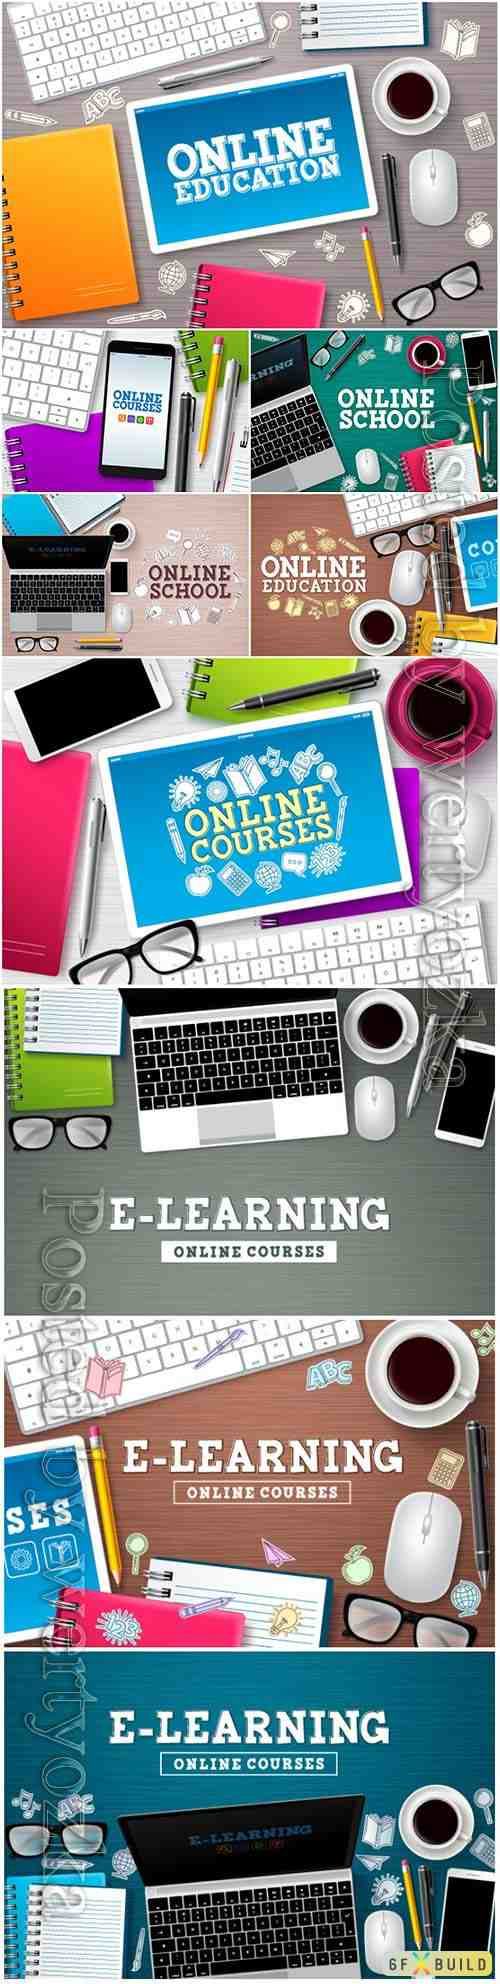 Online education elearning vector banner